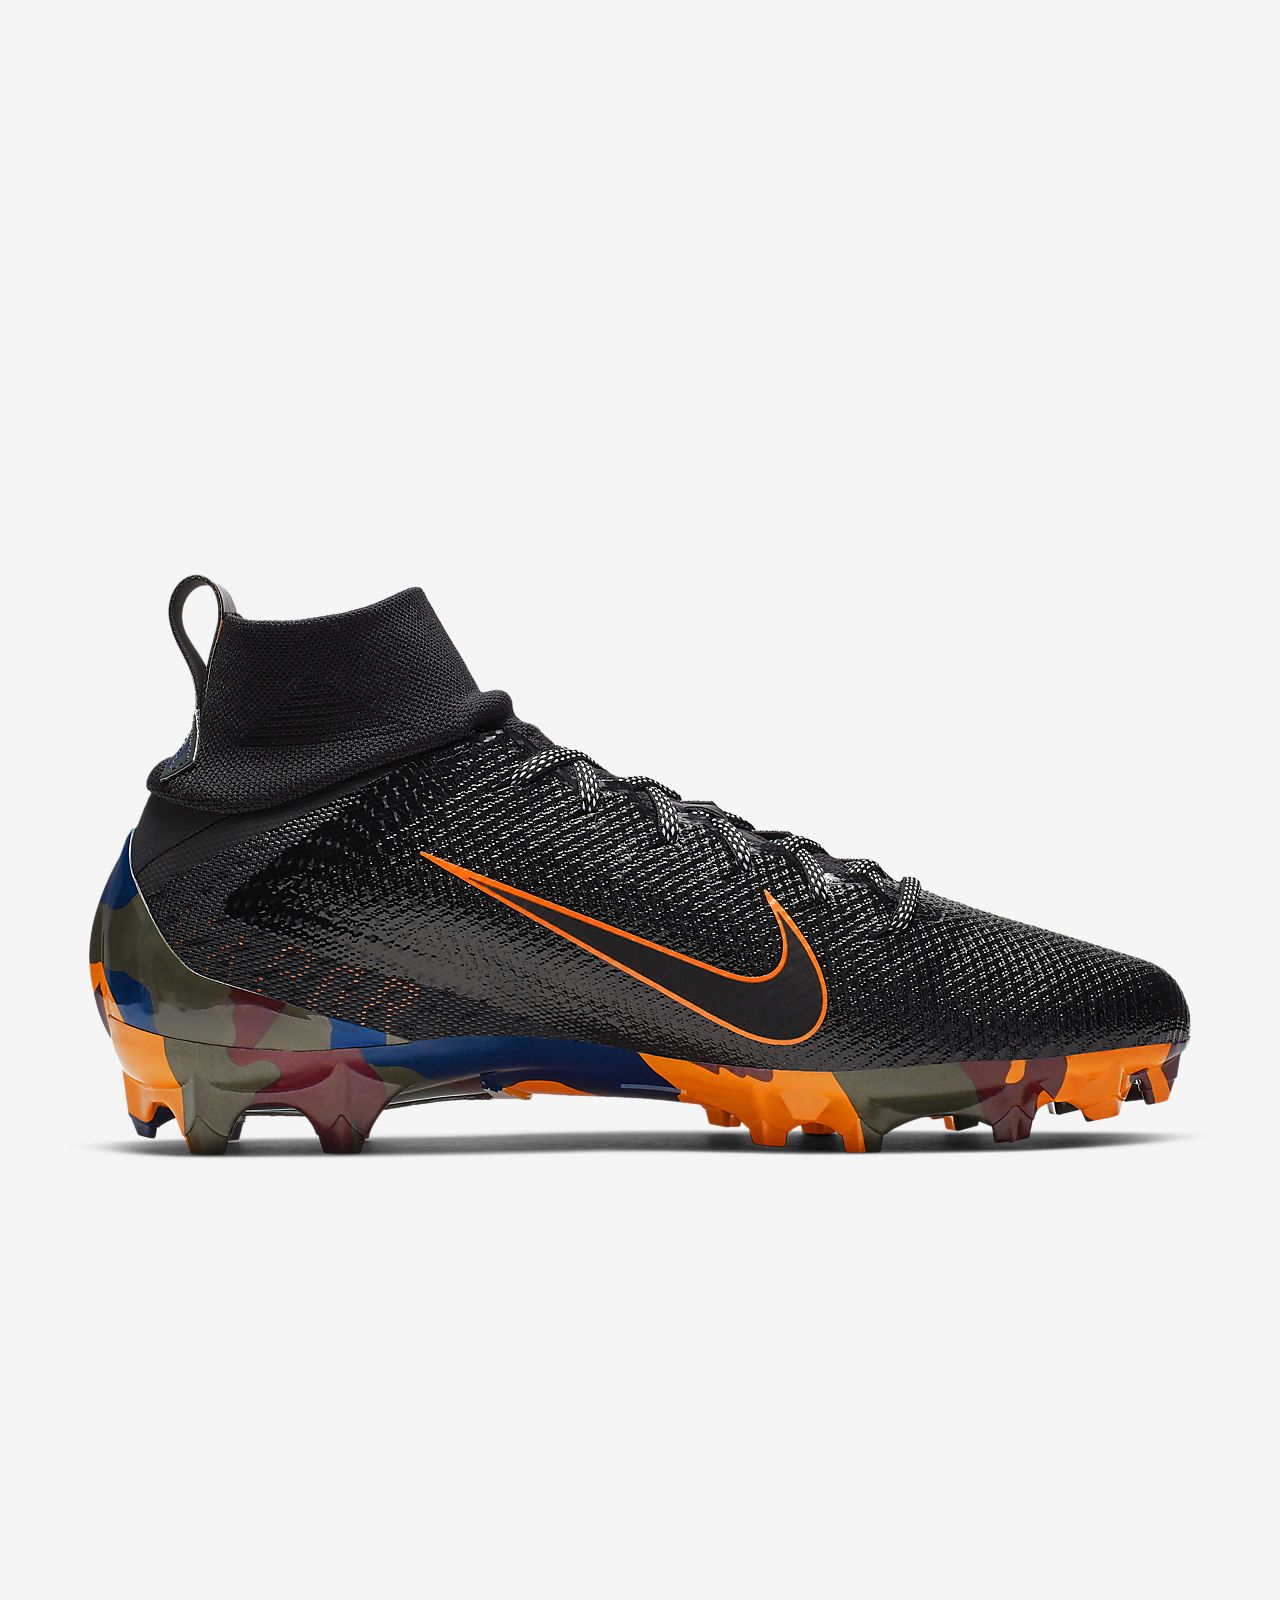 40d7d0d21e37 Nike Vapor Untouchable Pro 3 Men's Football Cleat. Nike.com